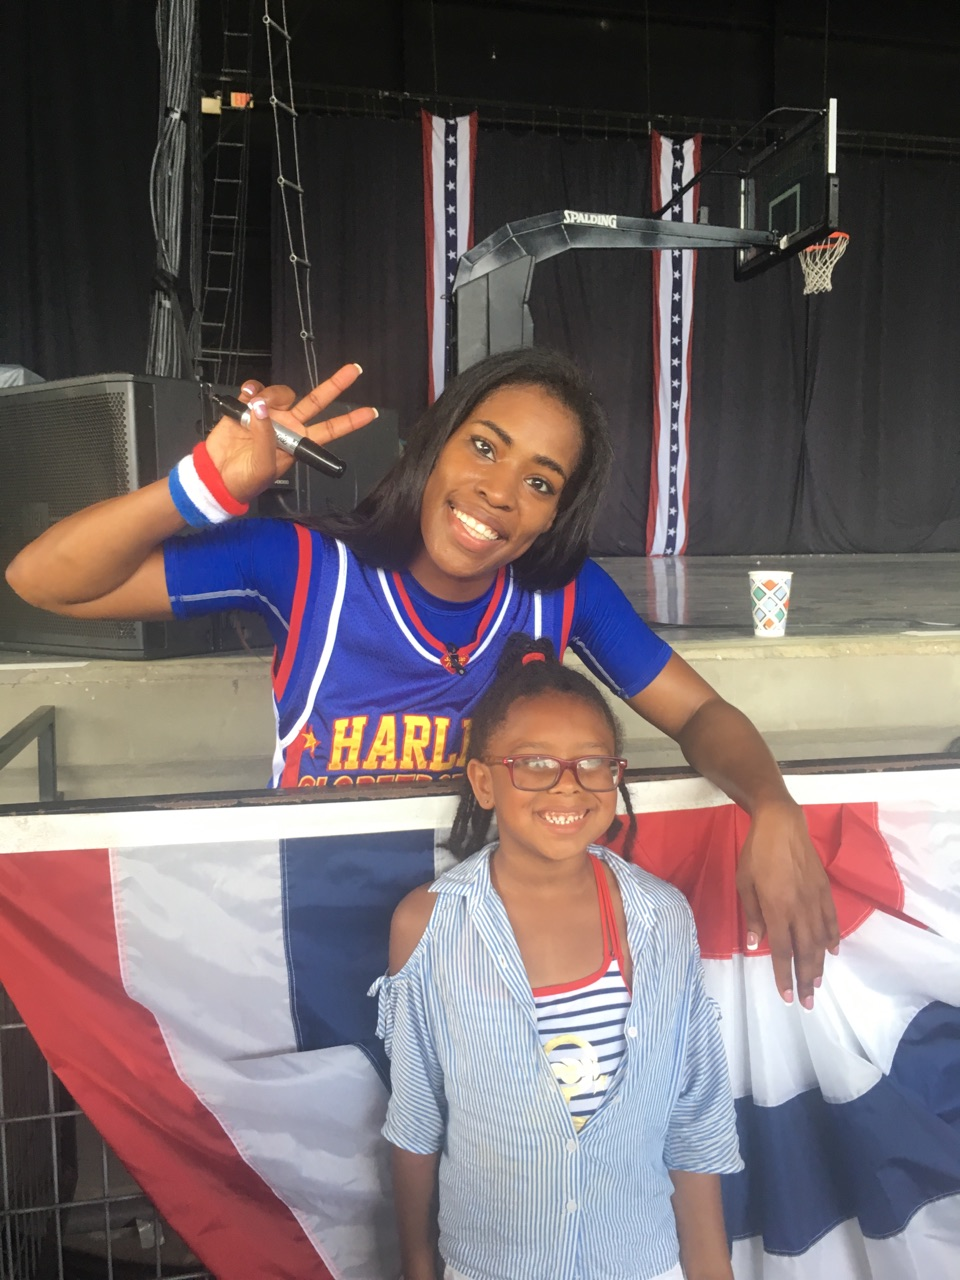 Harlem Globetrotters at Wild Adventures 2